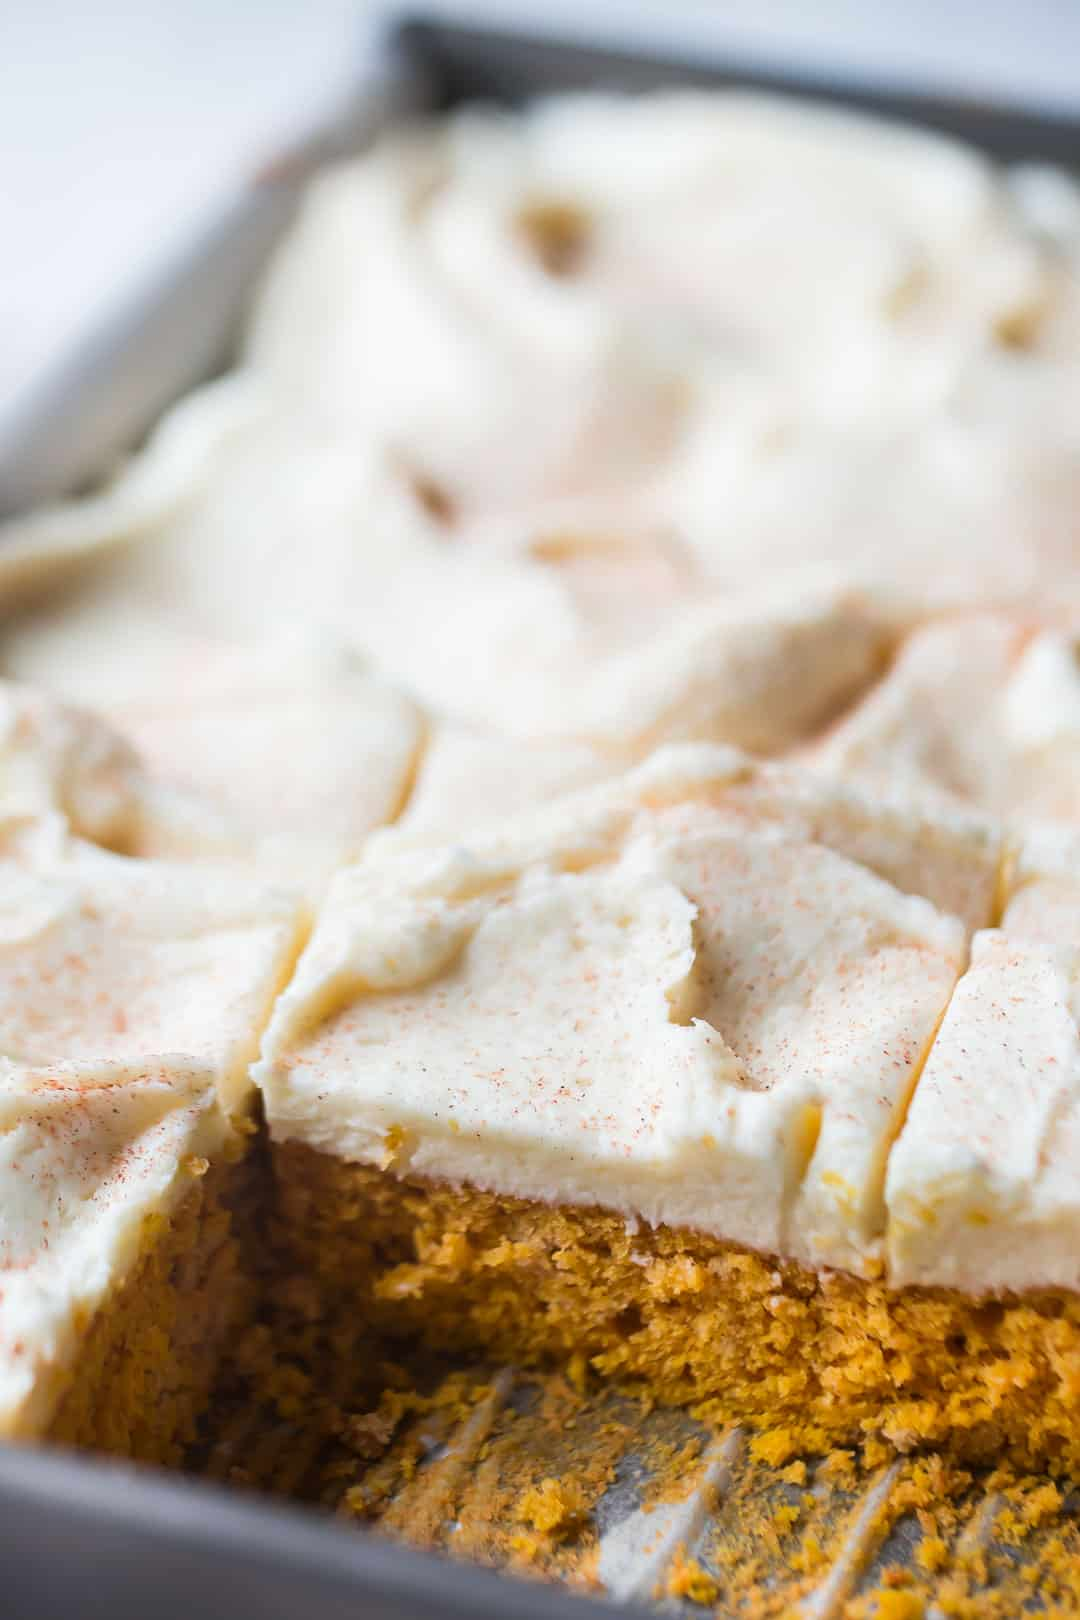 Rectangular pan of pumpkin spice cake with swirls of cream cheese frosting, on a pale background.